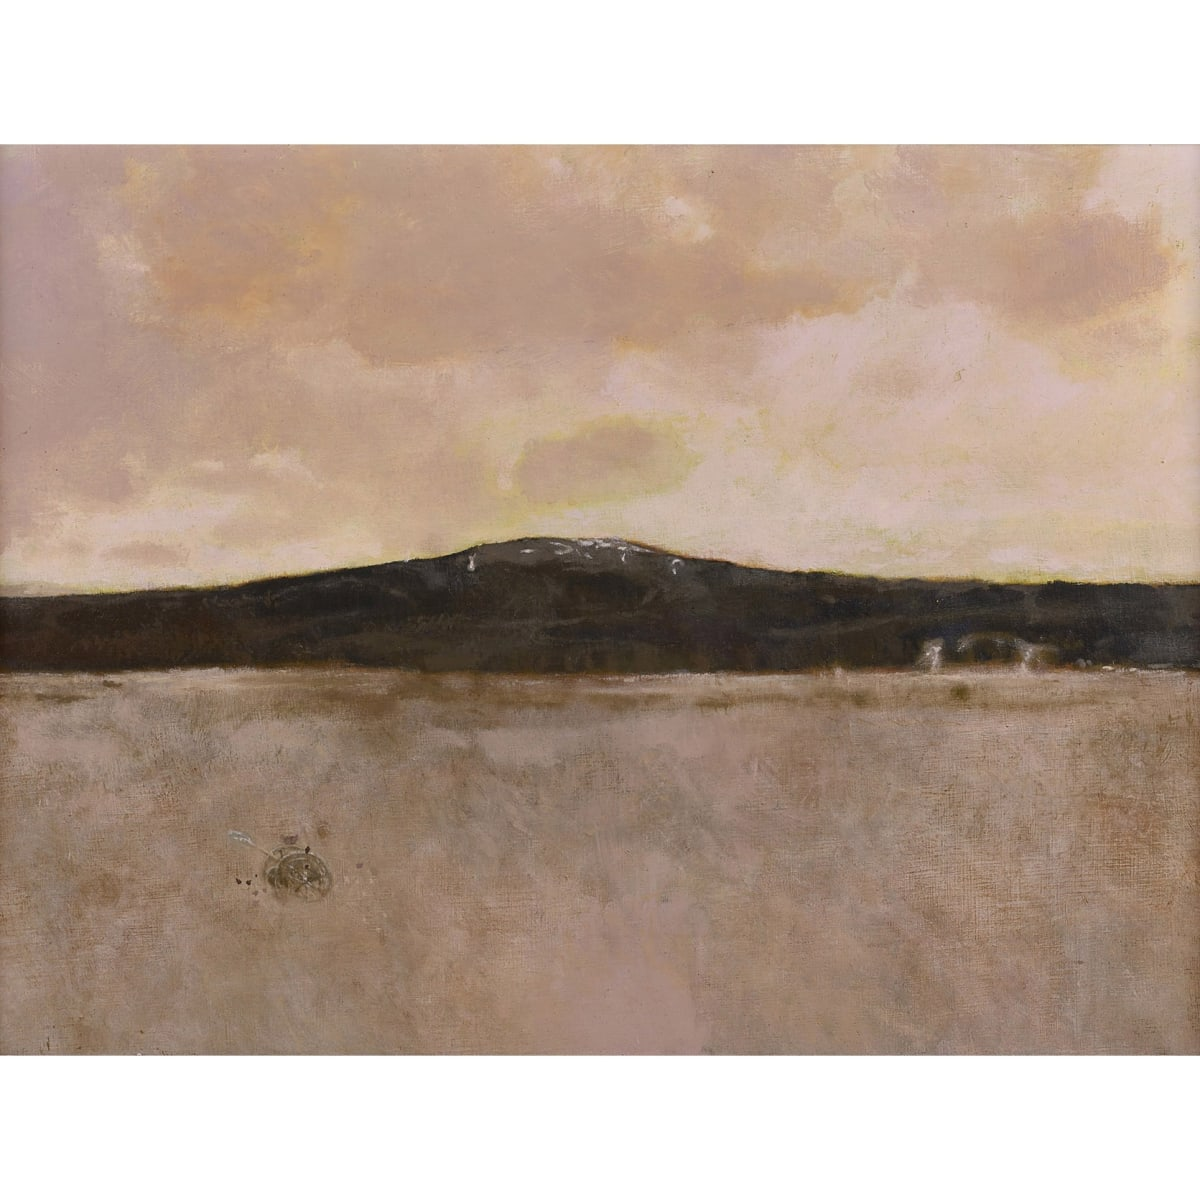 John Halliday View from the studio at the Eyrie oil on canvas laid on board 27 1/2 x 37 inches